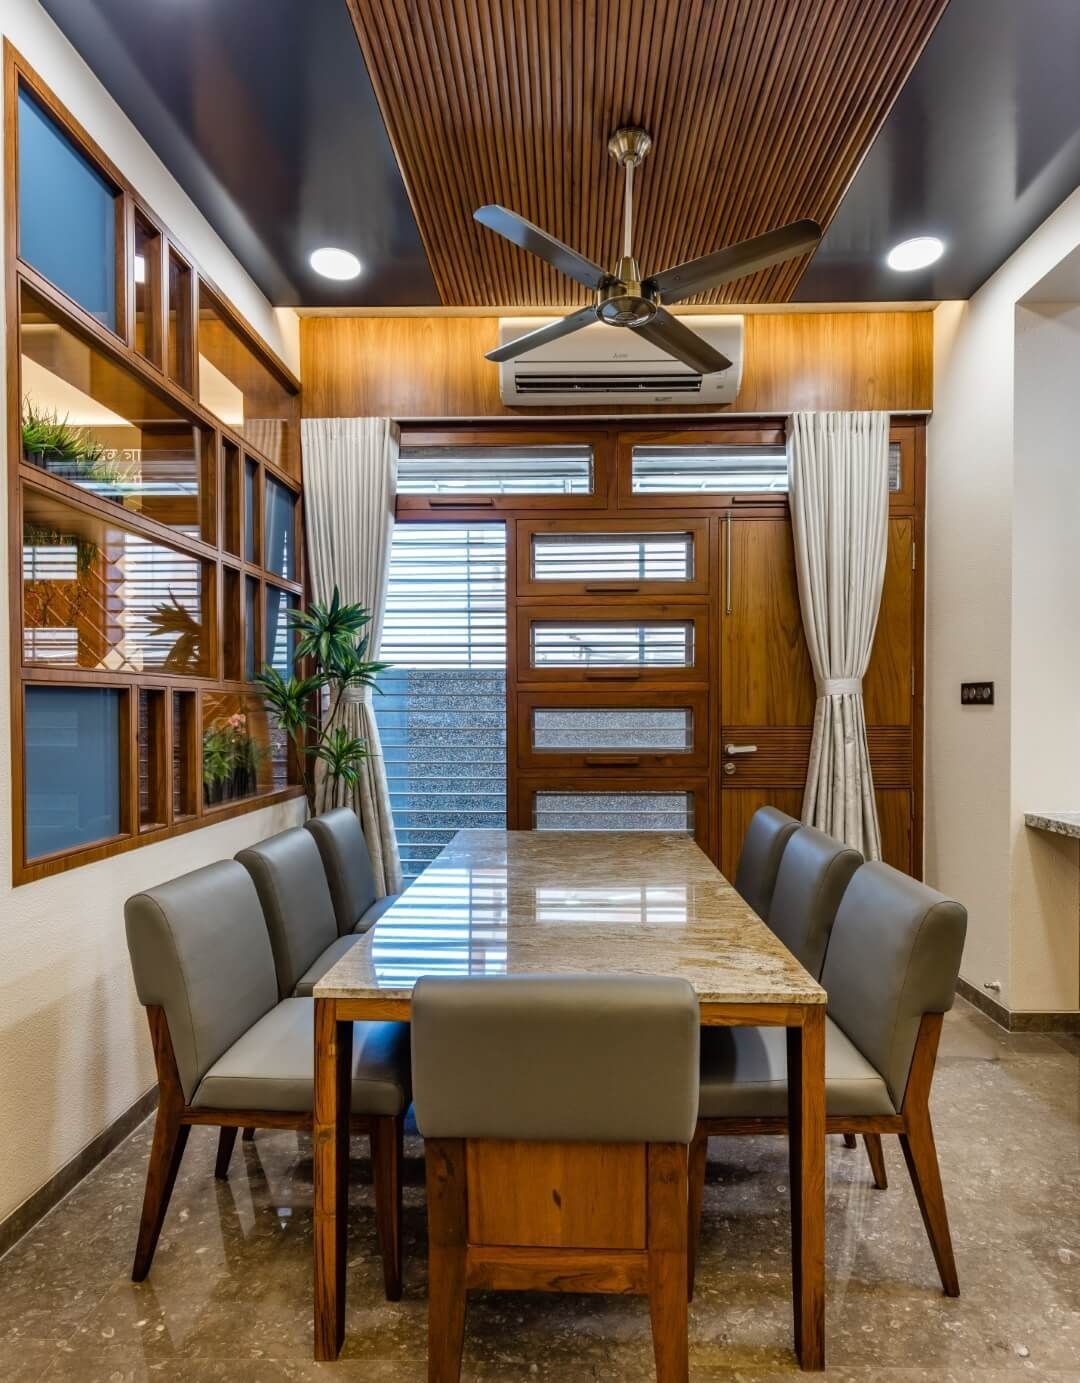 Kitchen Ceiling Ideas Kitchen Ceiling Ideas Vaulted And 3d Drop Ceiling In 2020 Wooden Ceiling Design Kitchen Ceiling Design Ceiling Design Bedroom